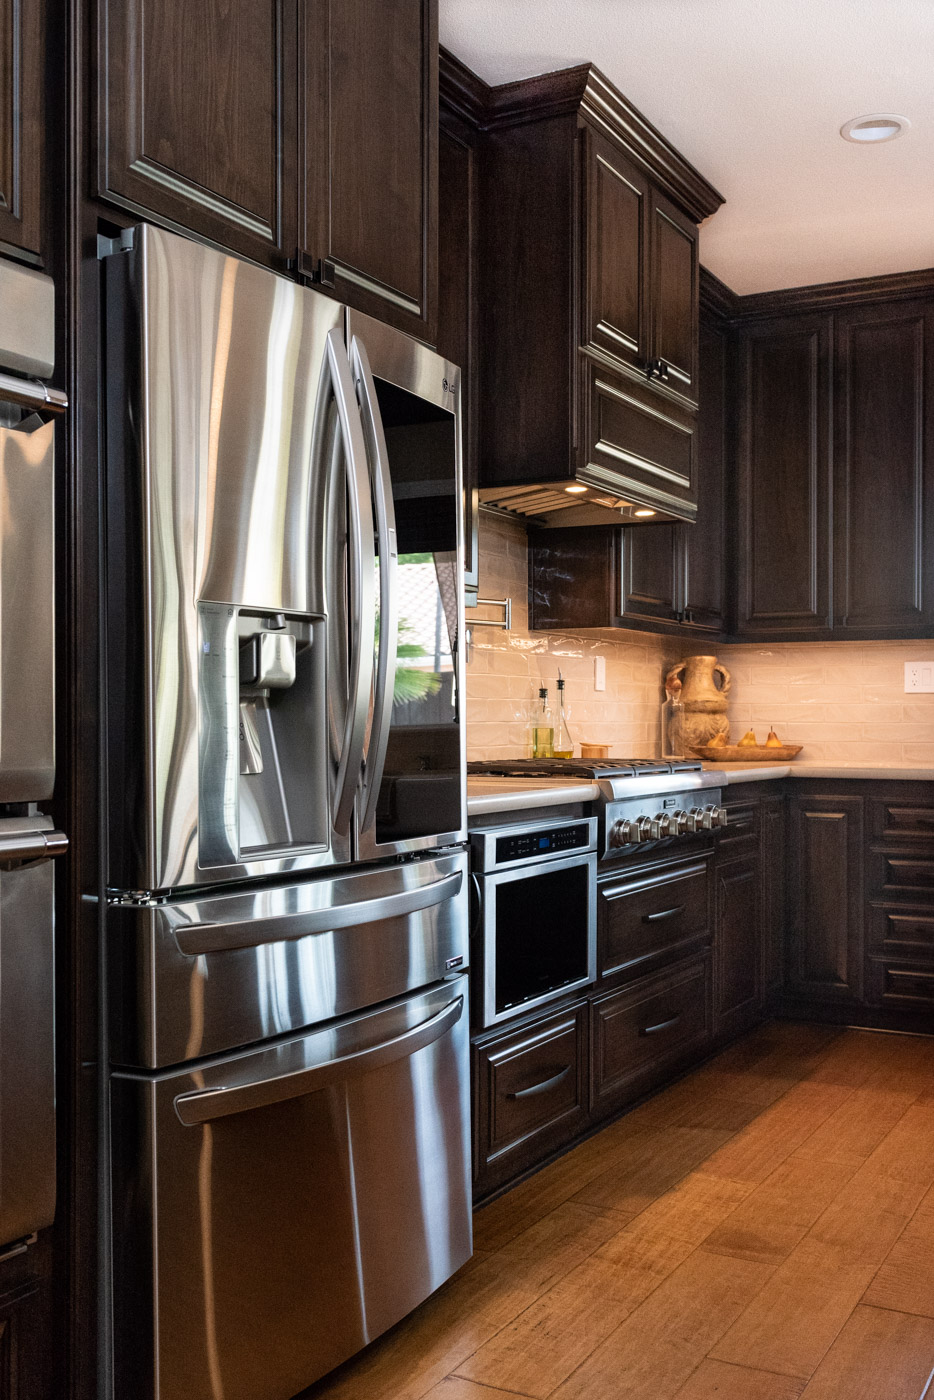 Traditional Mediterranean kitchen with dark wood stain cabinets and stainless steel appliances